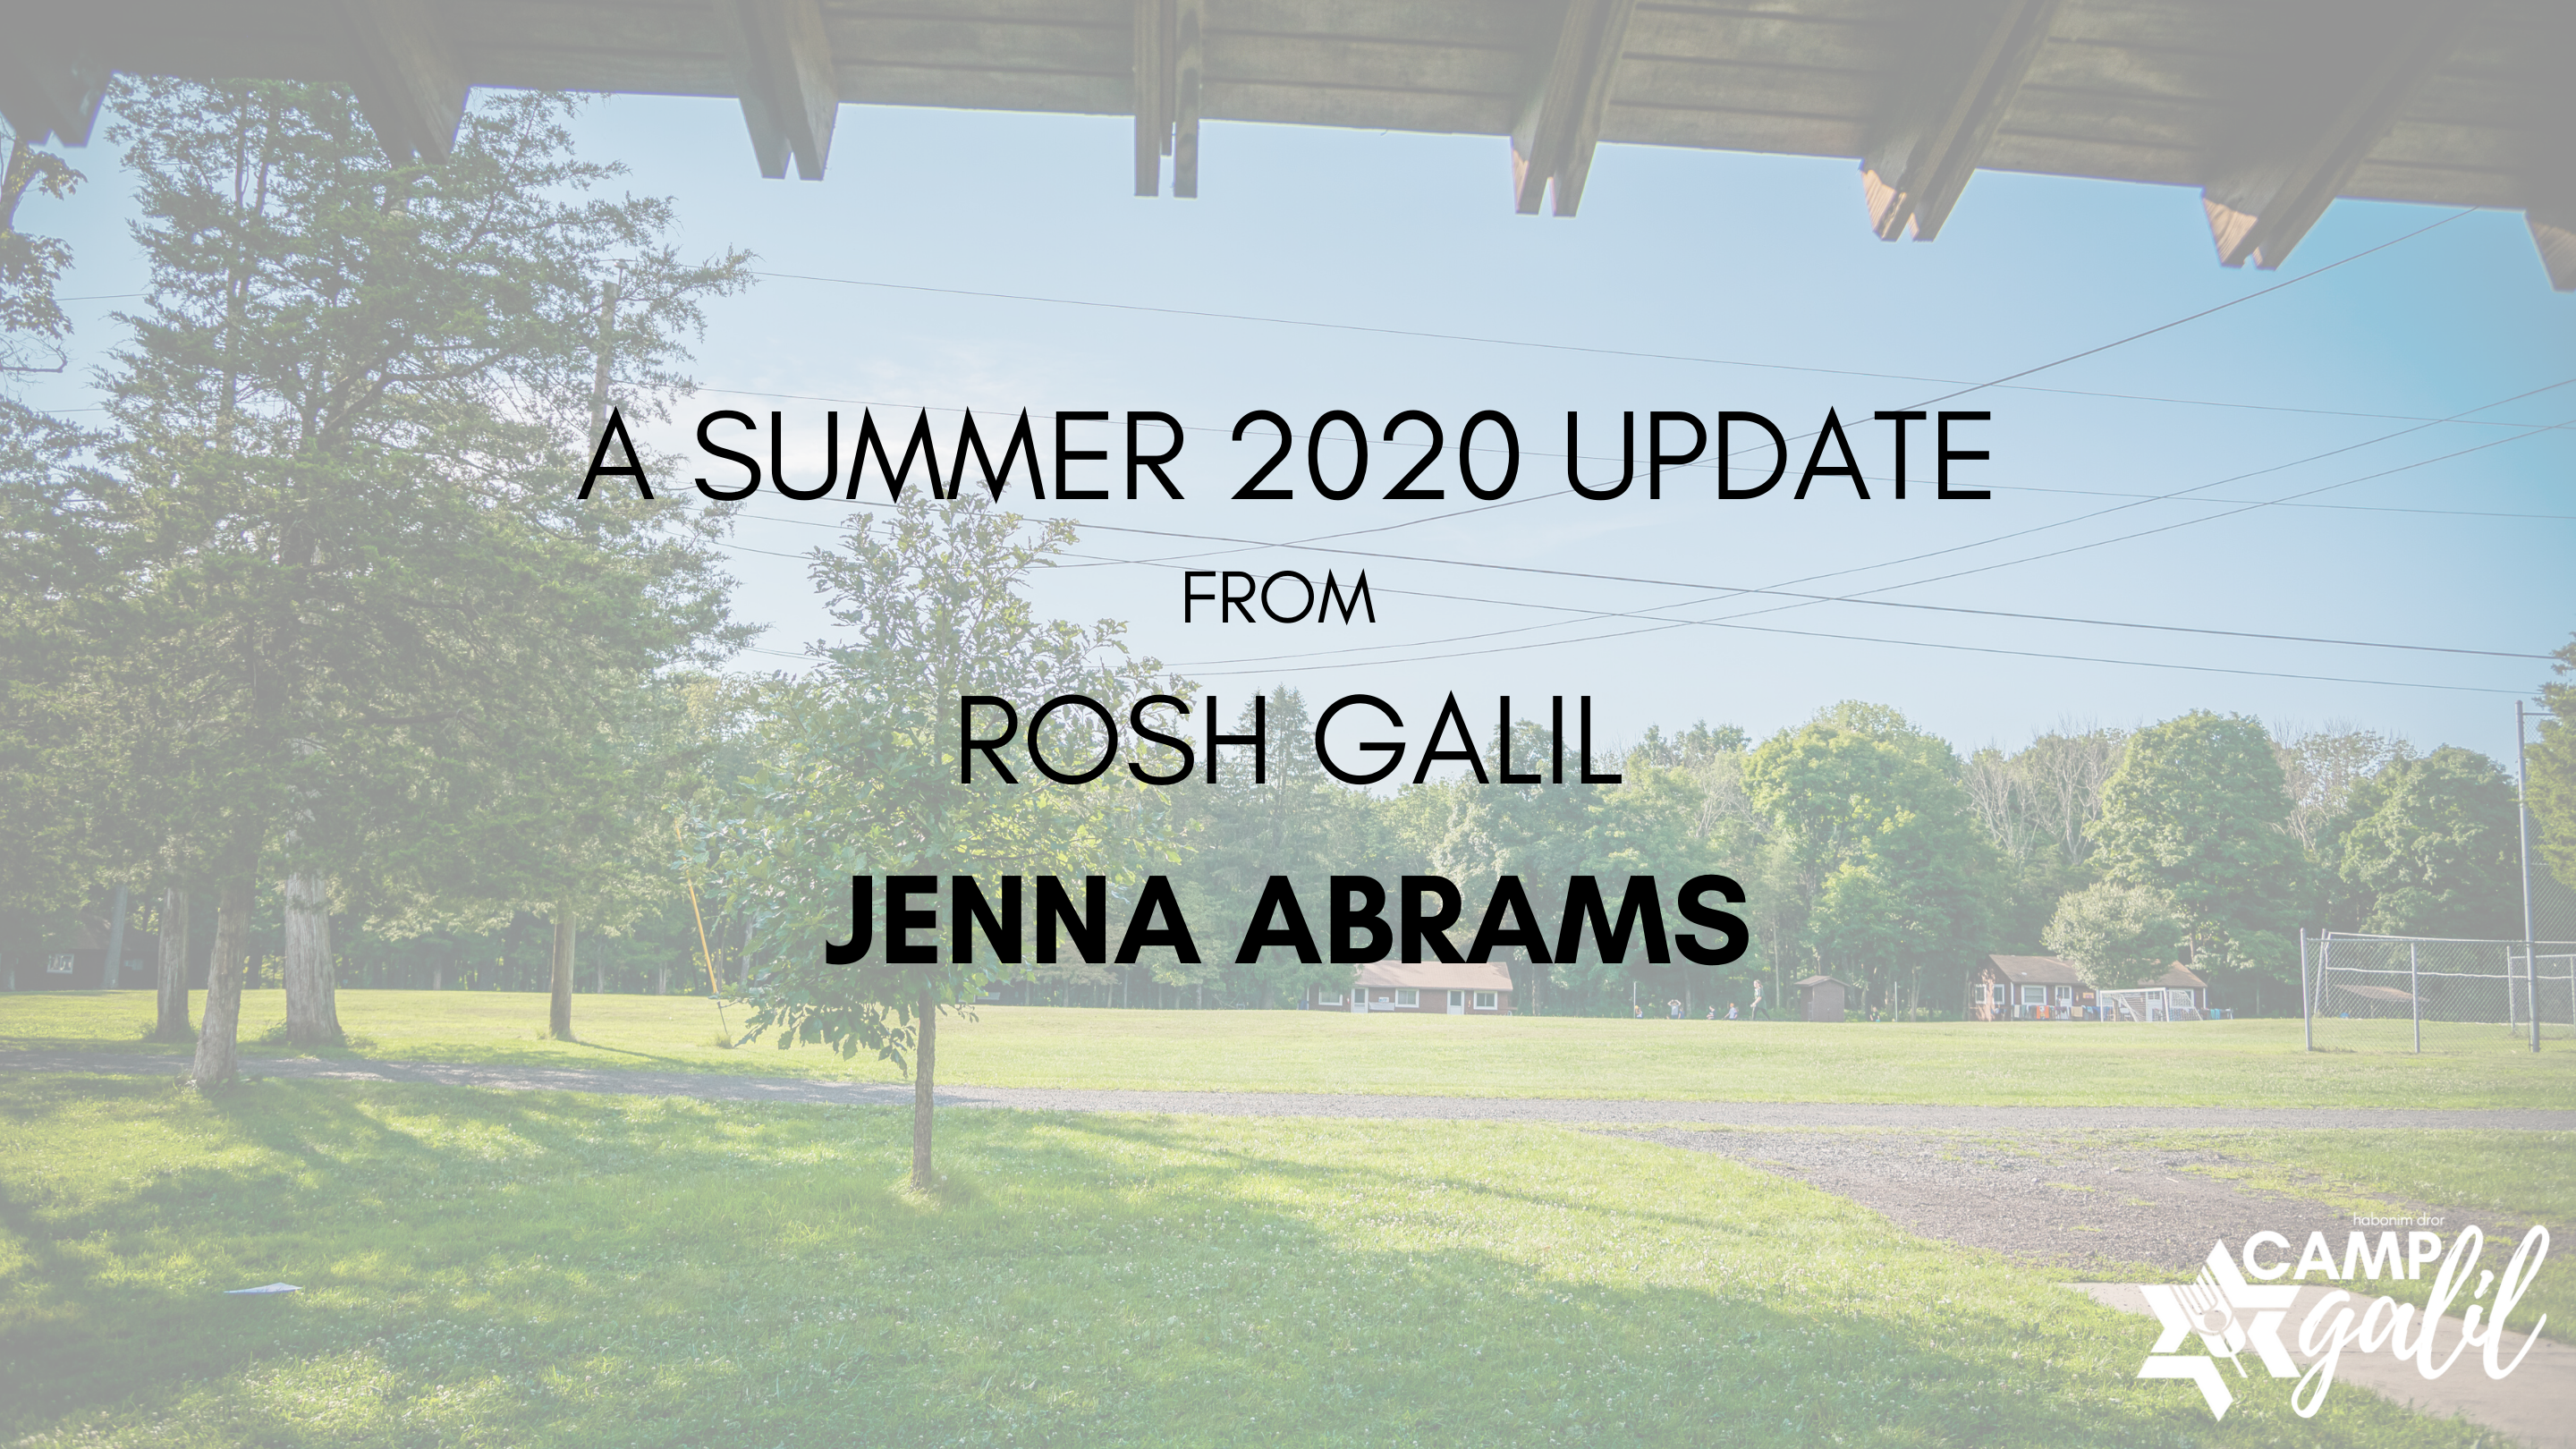 Camp Galil Summer 2020 COVID 19 Update